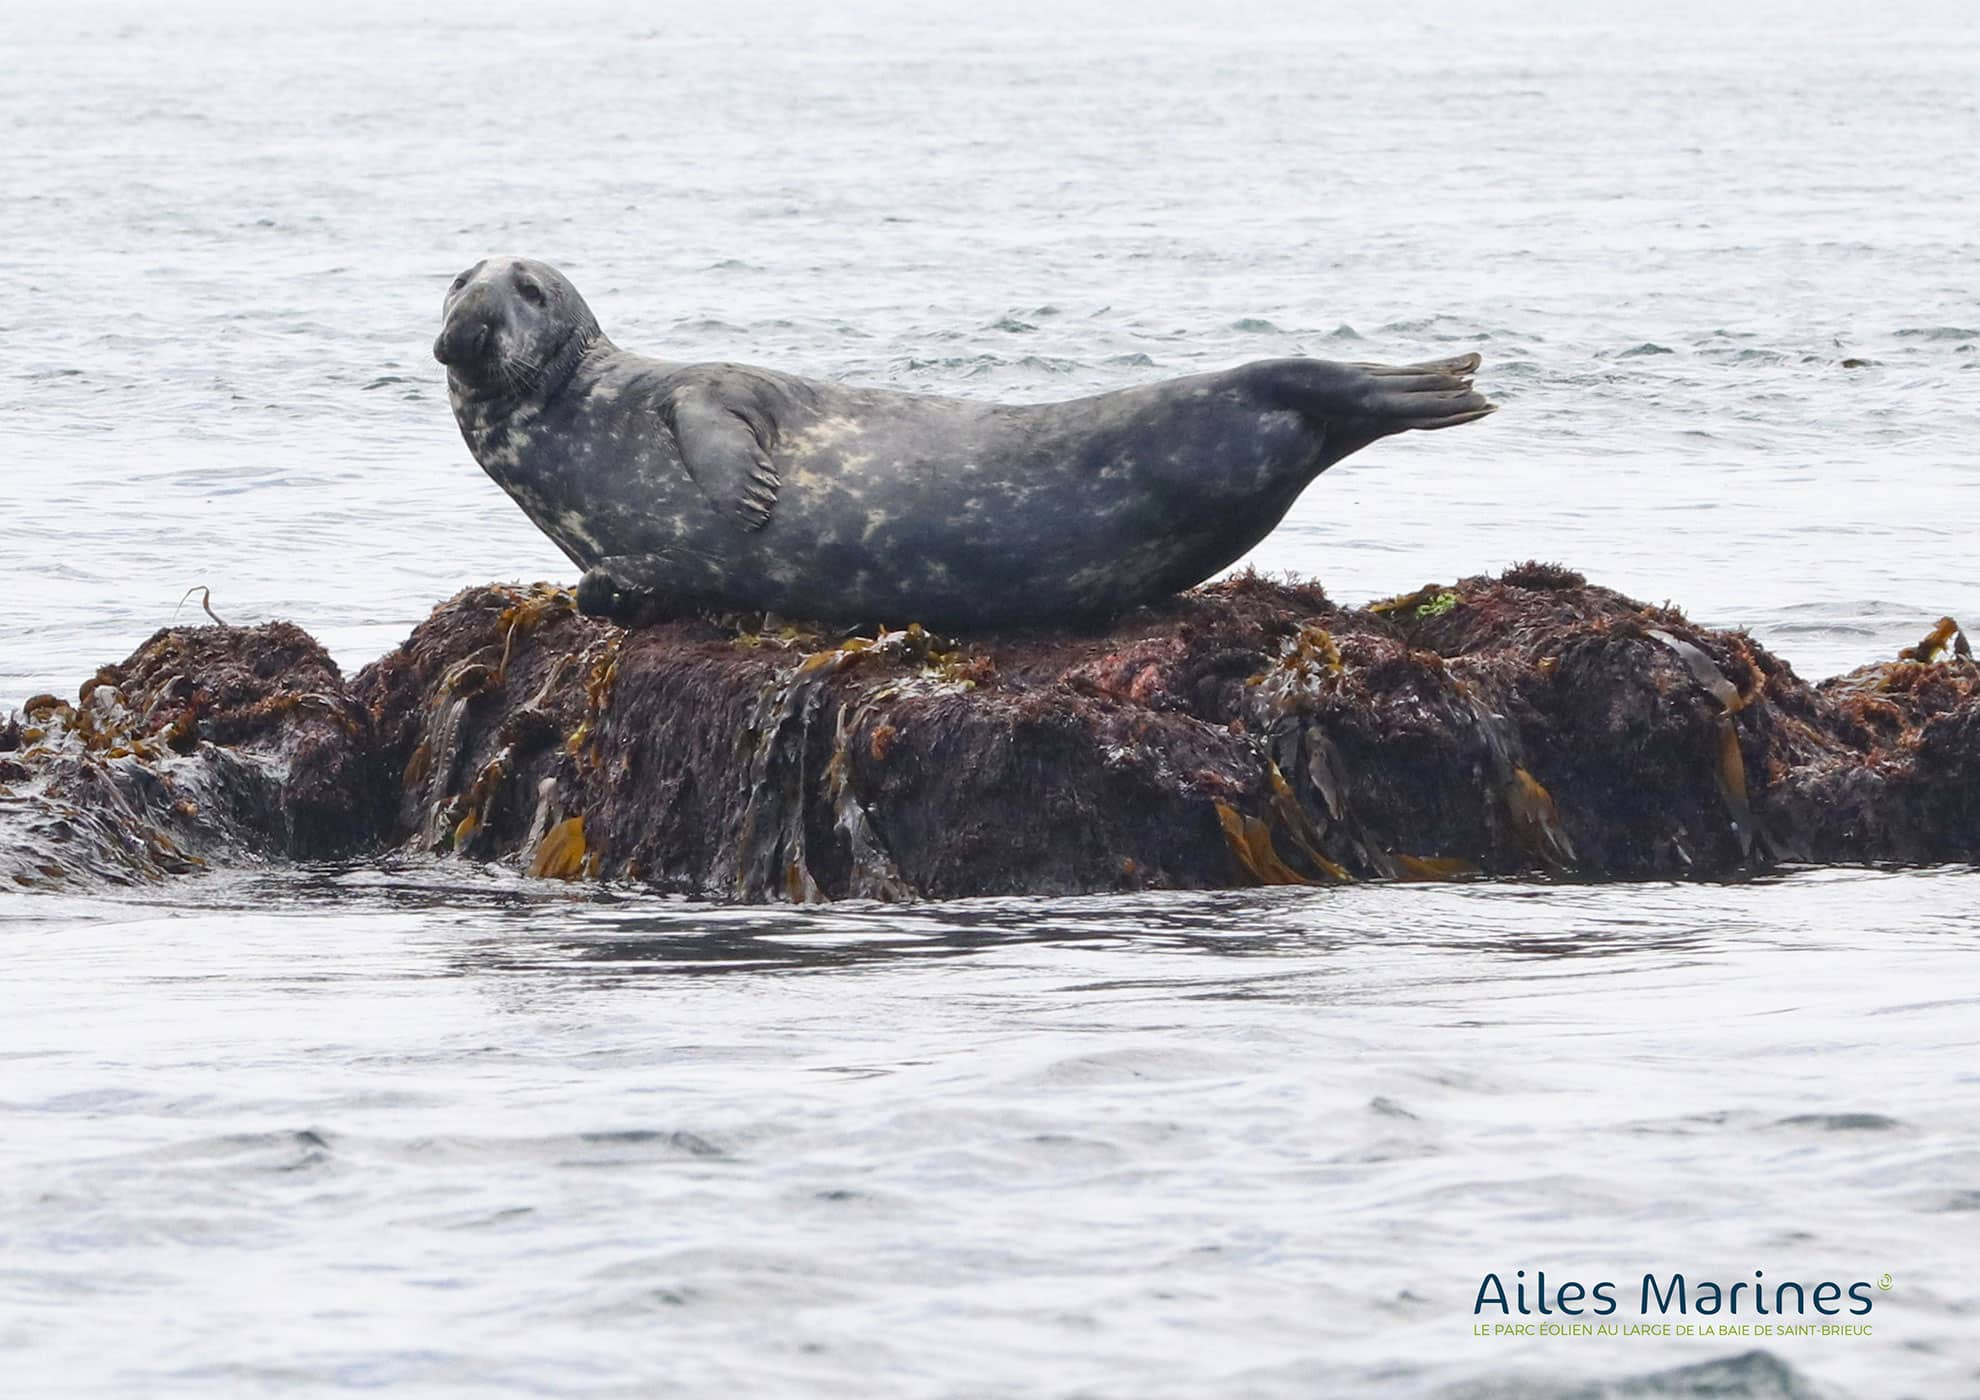 ailes-marines-seal-on-rock